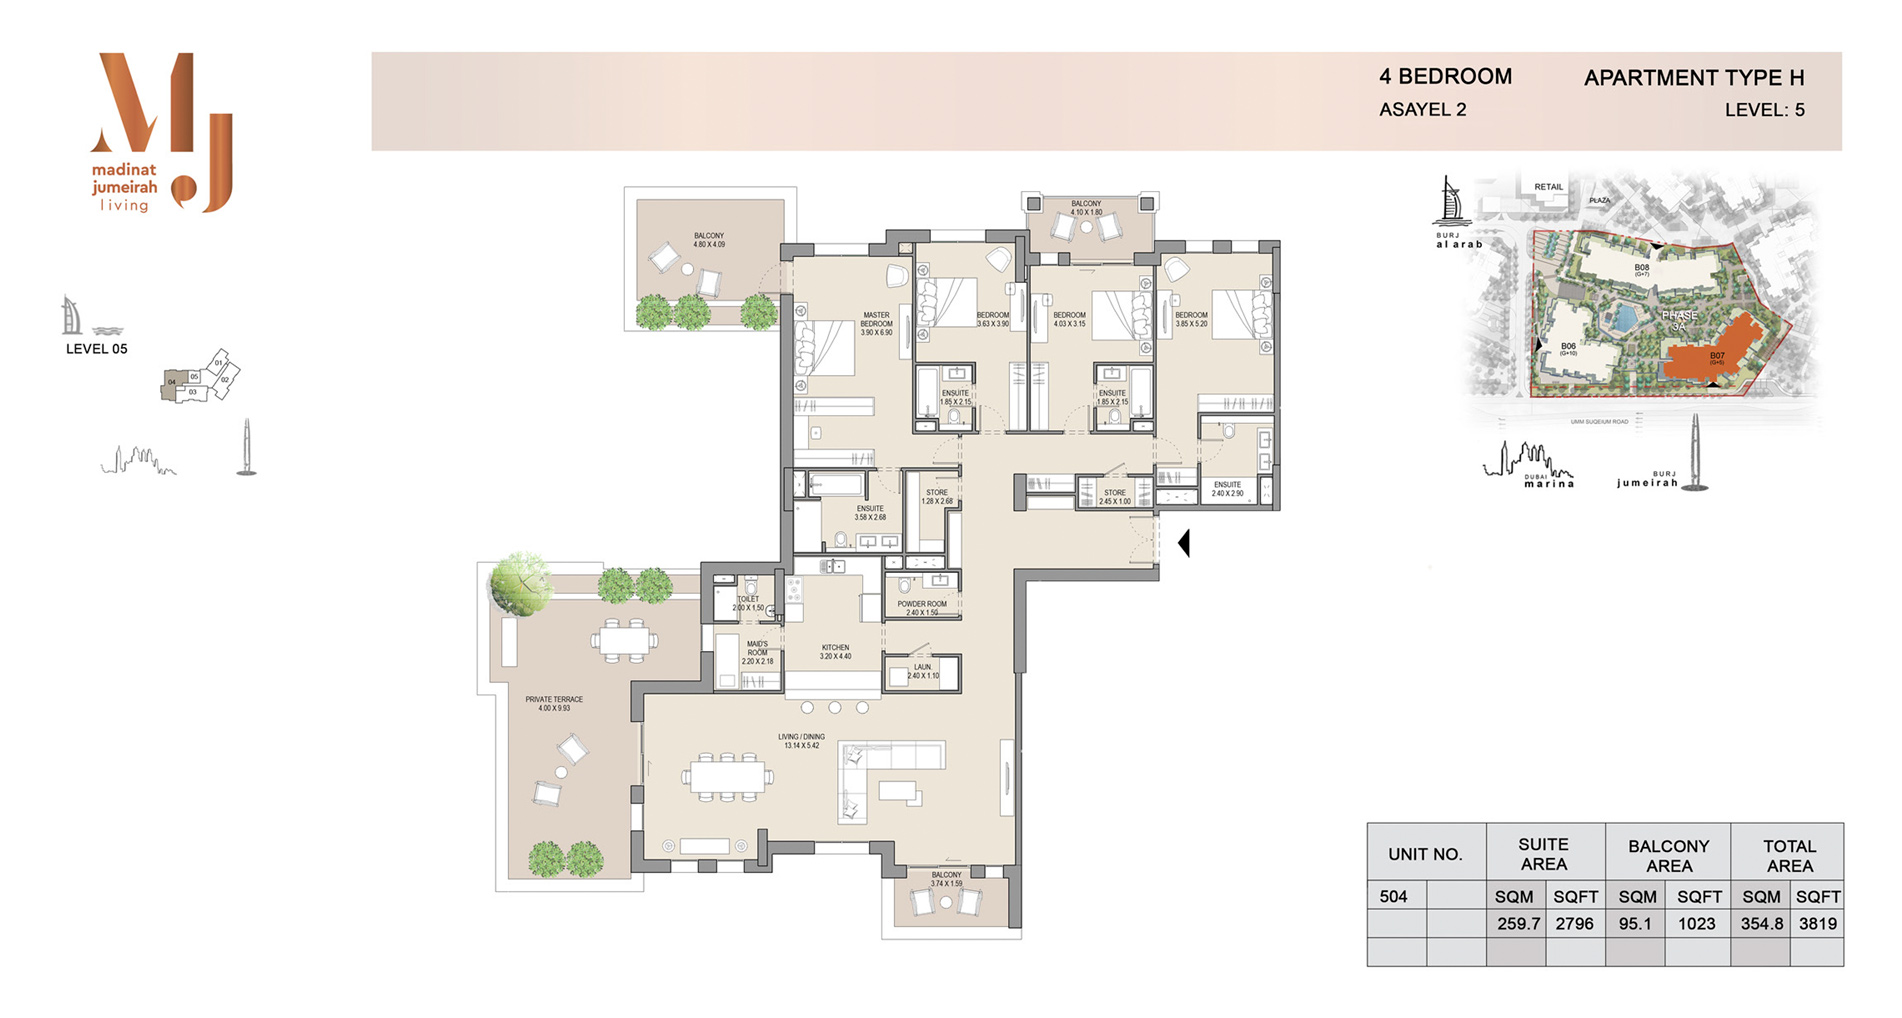 Building 2, 4 Bed Type H Level 5, Size 3819    sq. ft.